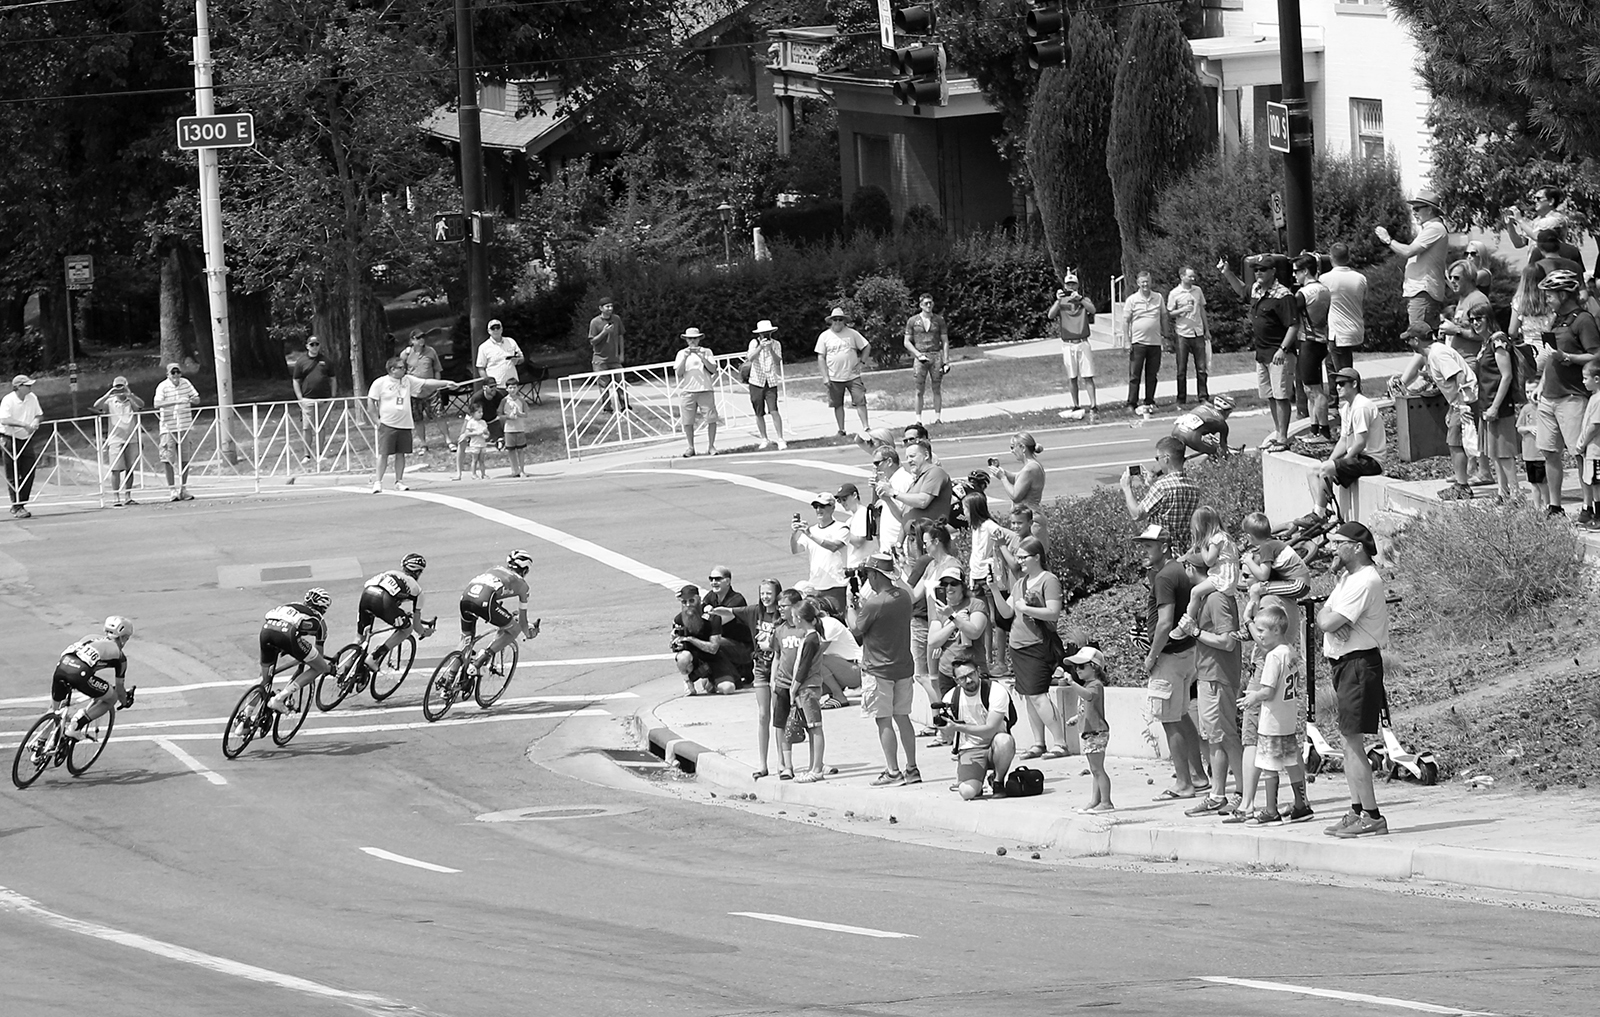 Fans cheered on the riders from various corners on the course. 2018 Tour of Utah Stage 4, August 8, 2018, Salt Lake City, Utah. Photo by Cathy Fegan-Kim, cottonsoxphotography.net